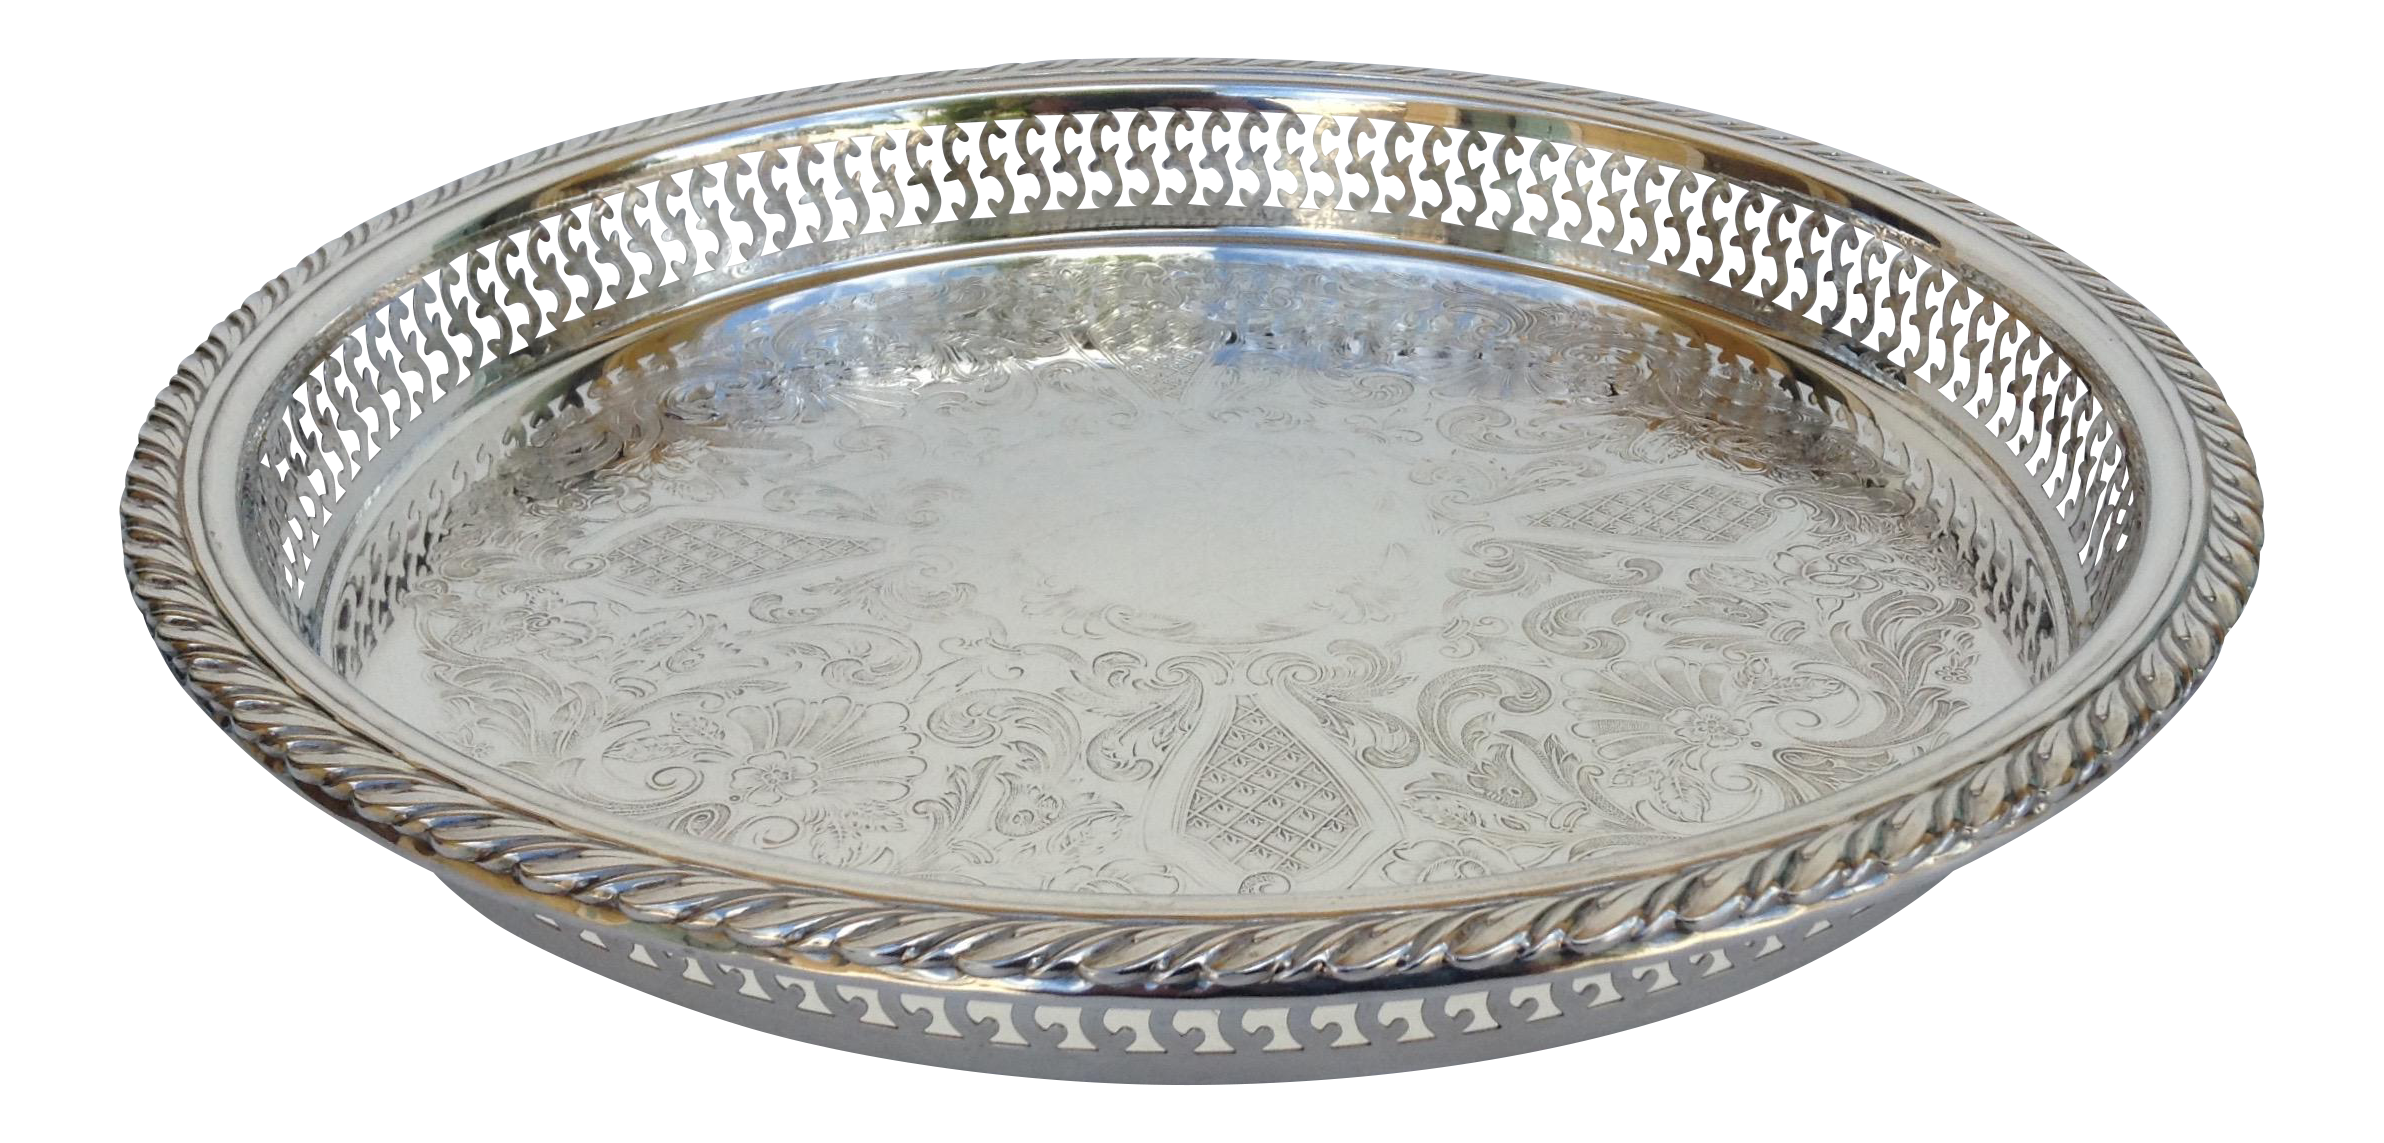 silver plate png